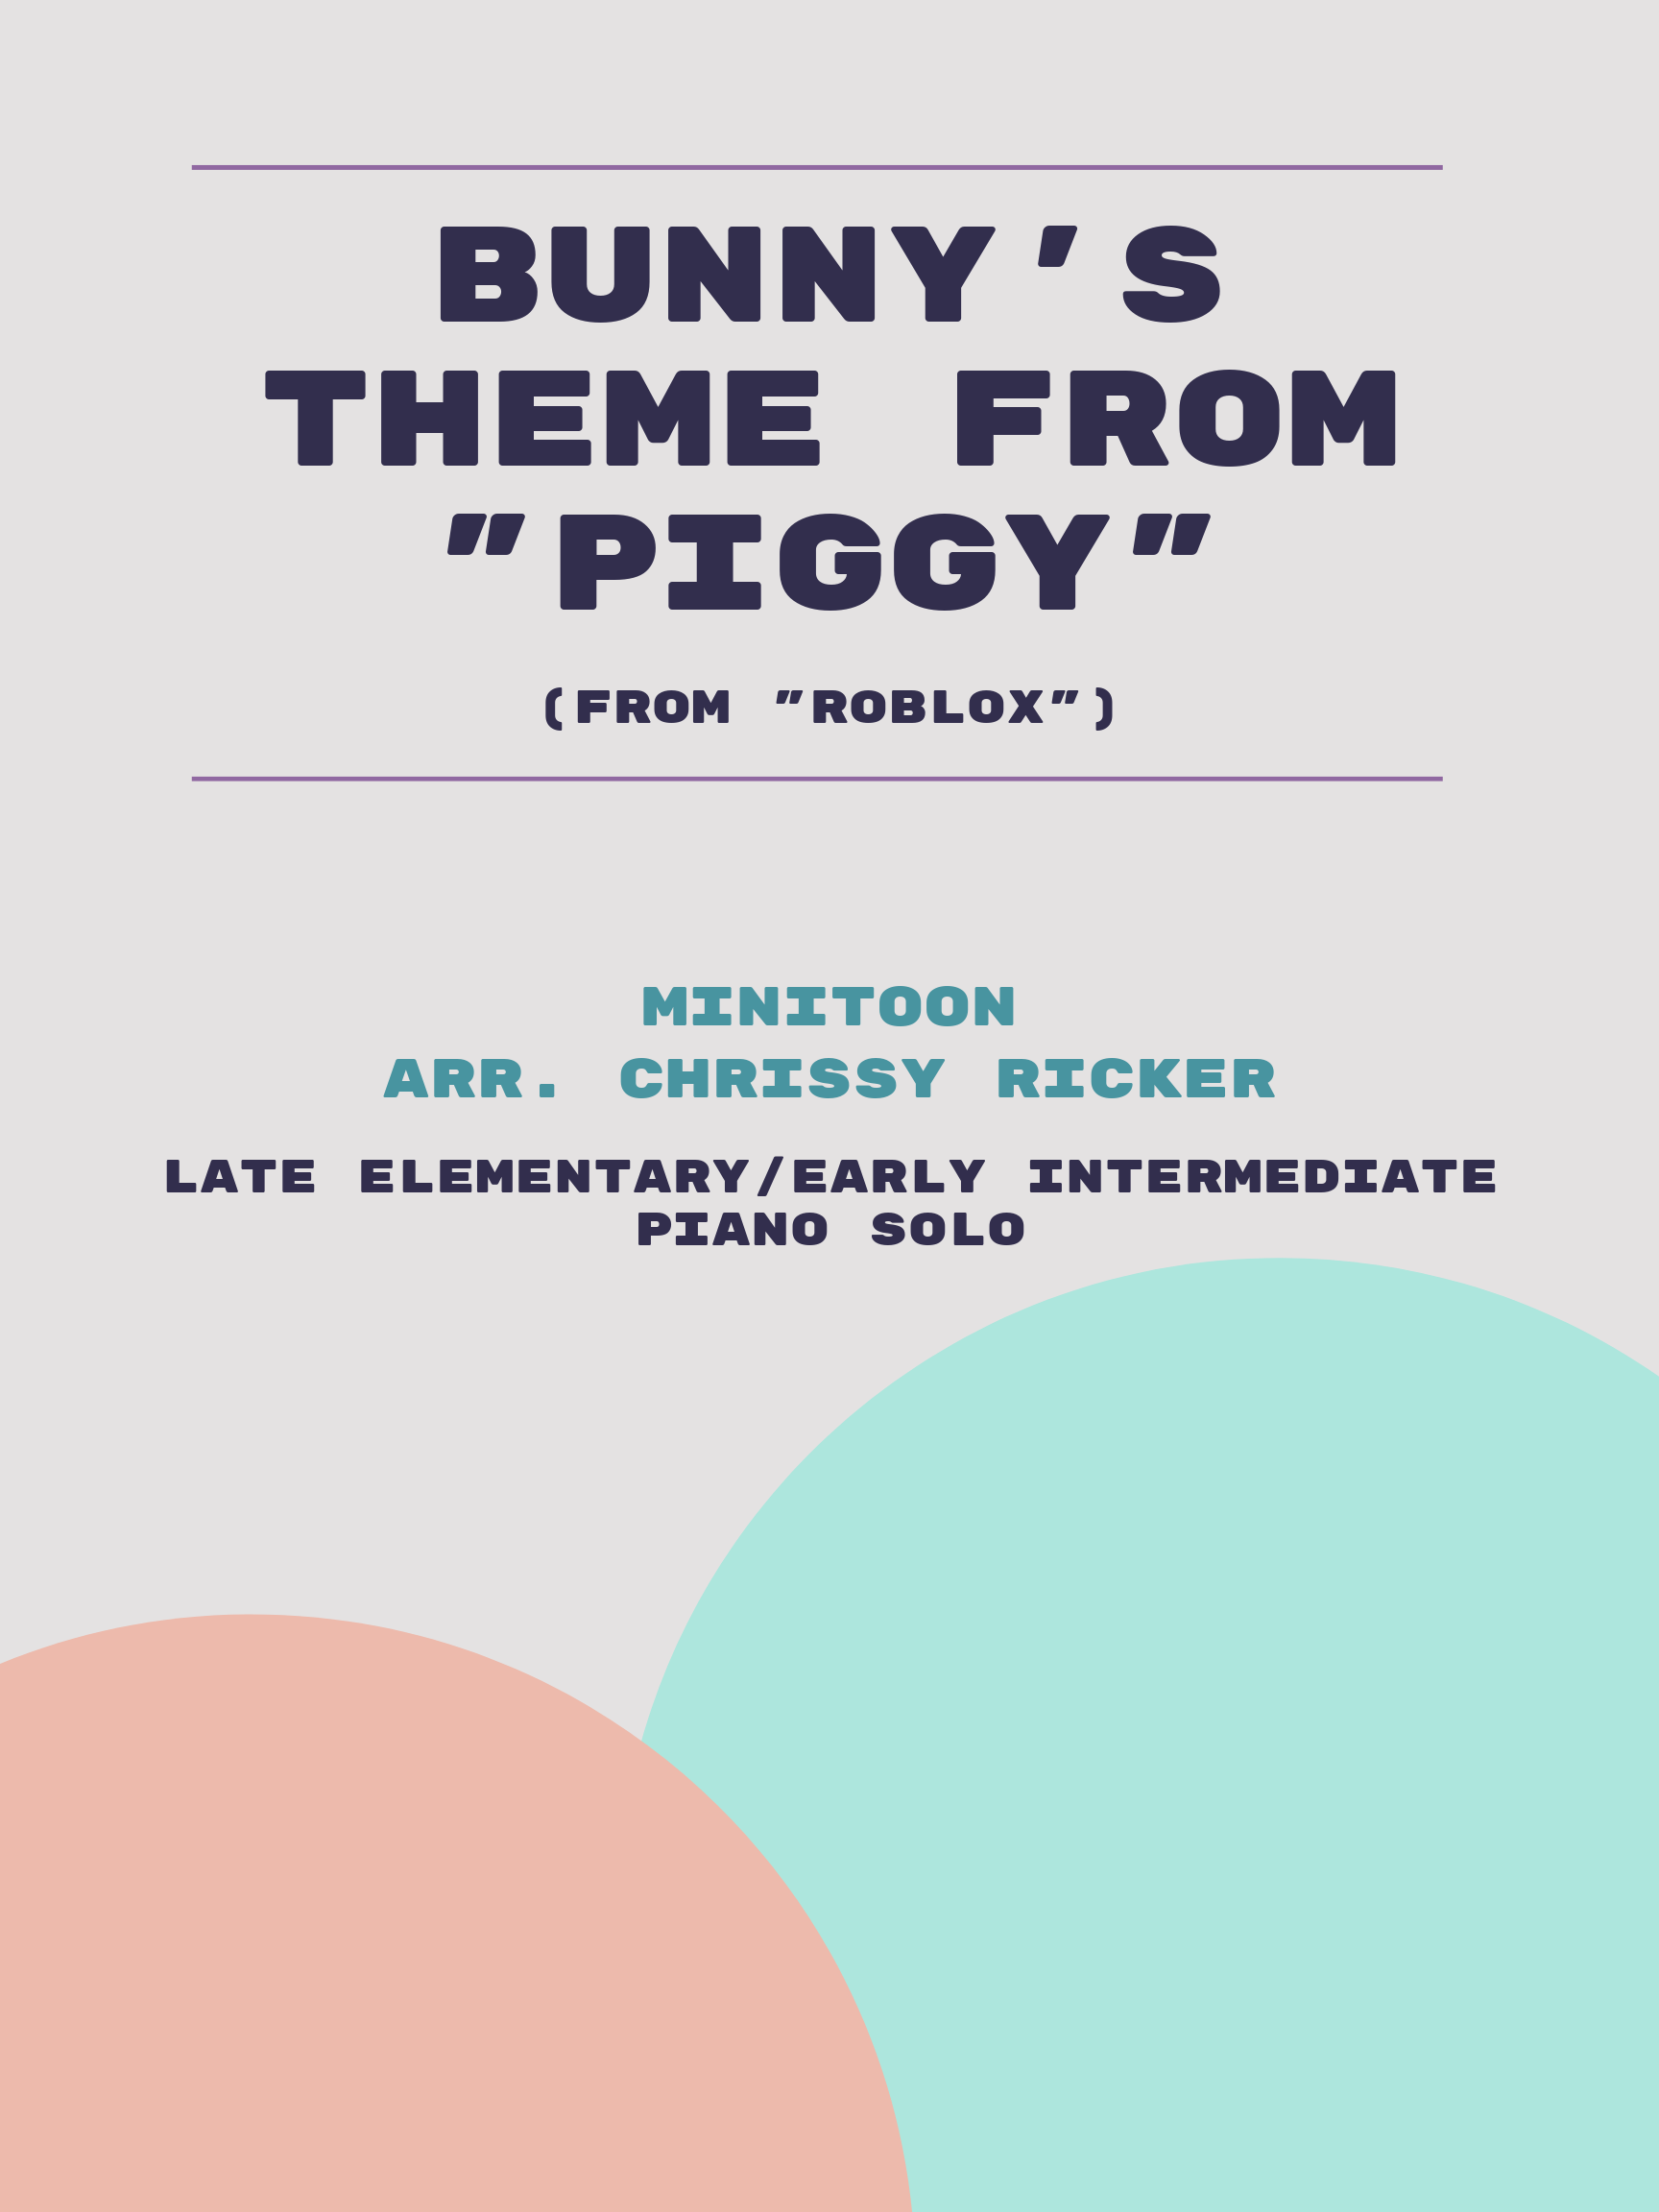 """Bunny's Theme from """"Piggy"""" by MiniToon"""